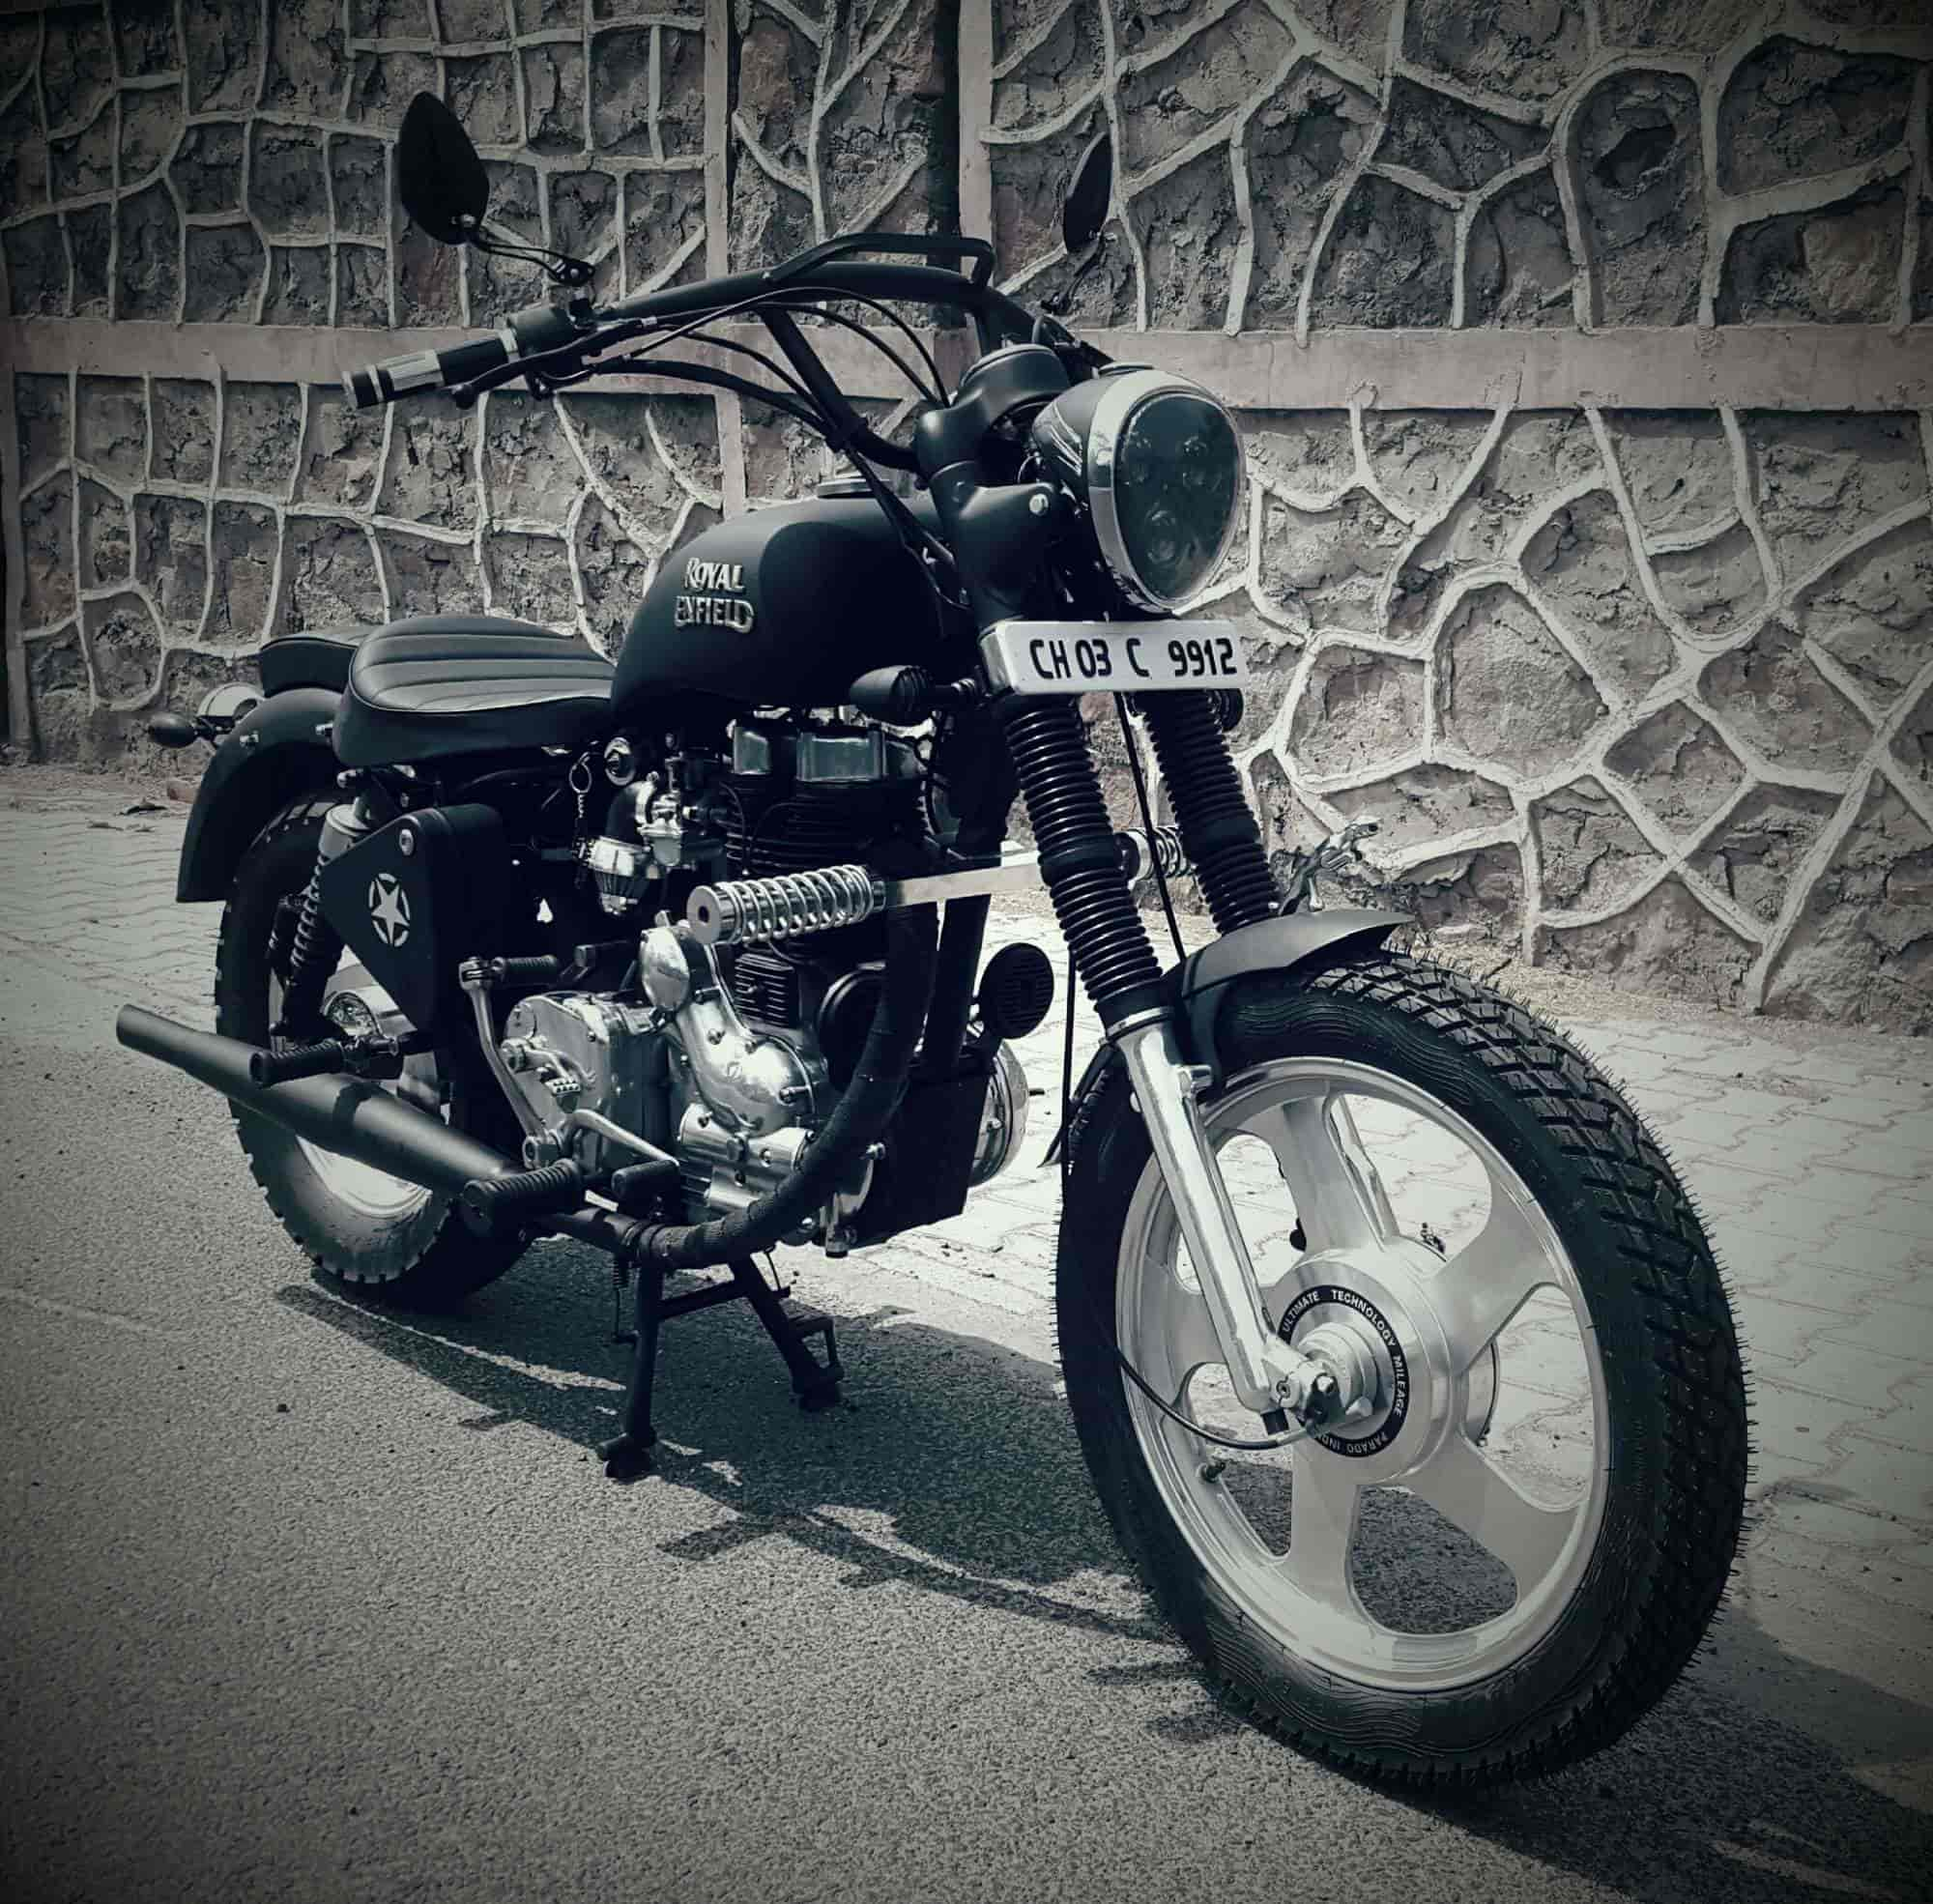 Bullet Bike Accessories In Bangalore : Ash Cycles